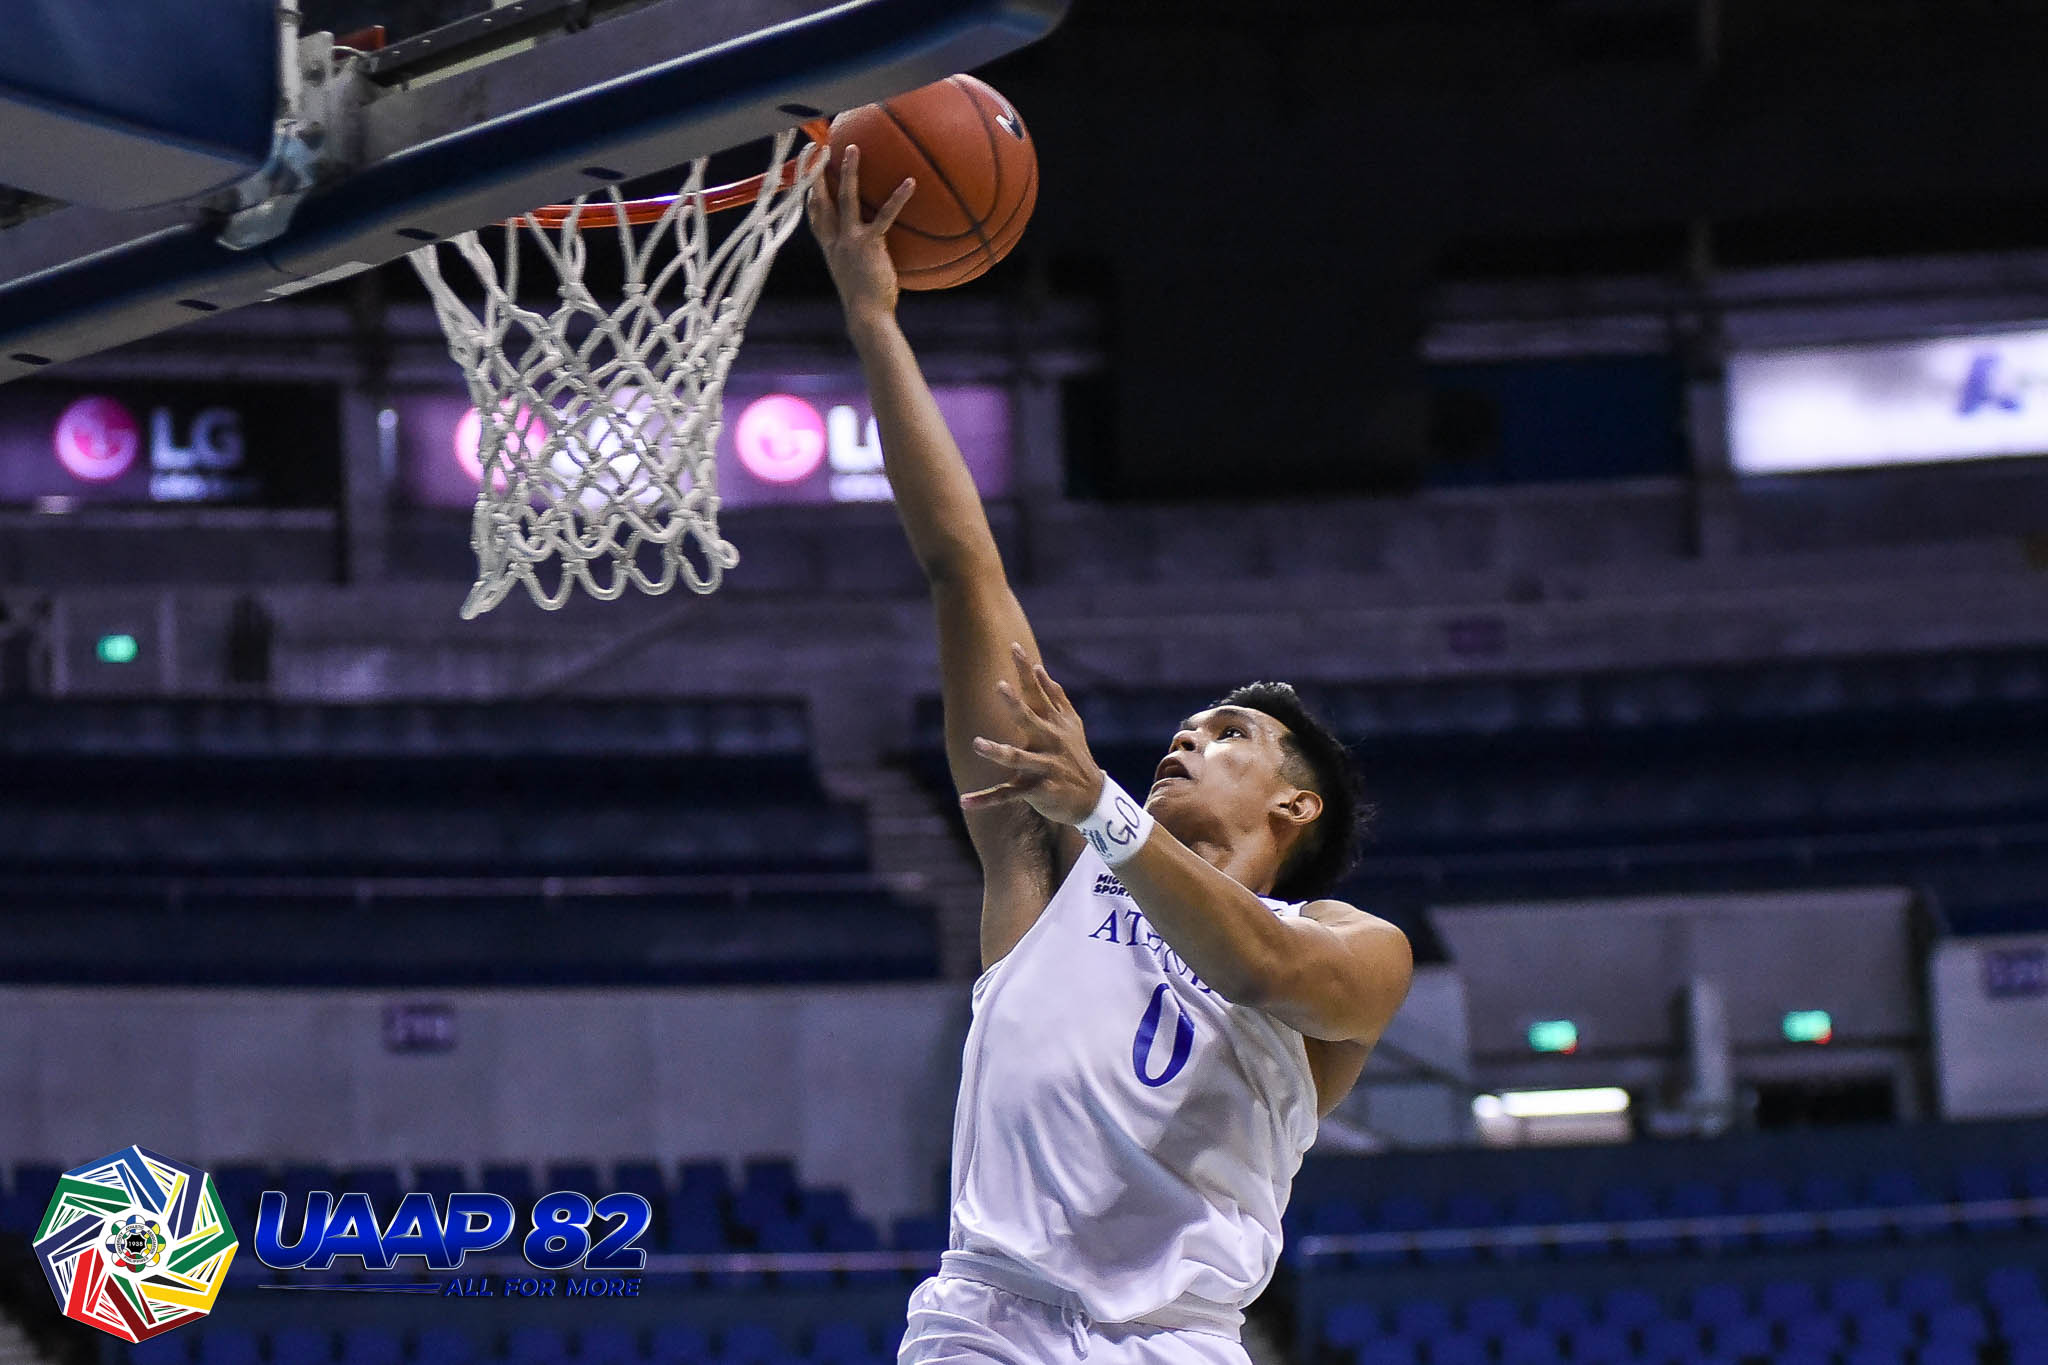 Tiebreaker Times Ateneo Blue Eagles stave off Adamson, remain unbeaten for one year ADMU AdU Basketball News UAAP  William Navarro Valandre Chauca UAAP Season 82 Men's Basketball UAAP Season 82 Thirdy Ravena Tab Baldwin Matthew Daves Matt Nieto Jerrick Ahanmisi Franz Pumaren Ateneo Men's Basketball Adamson Men's Basketball